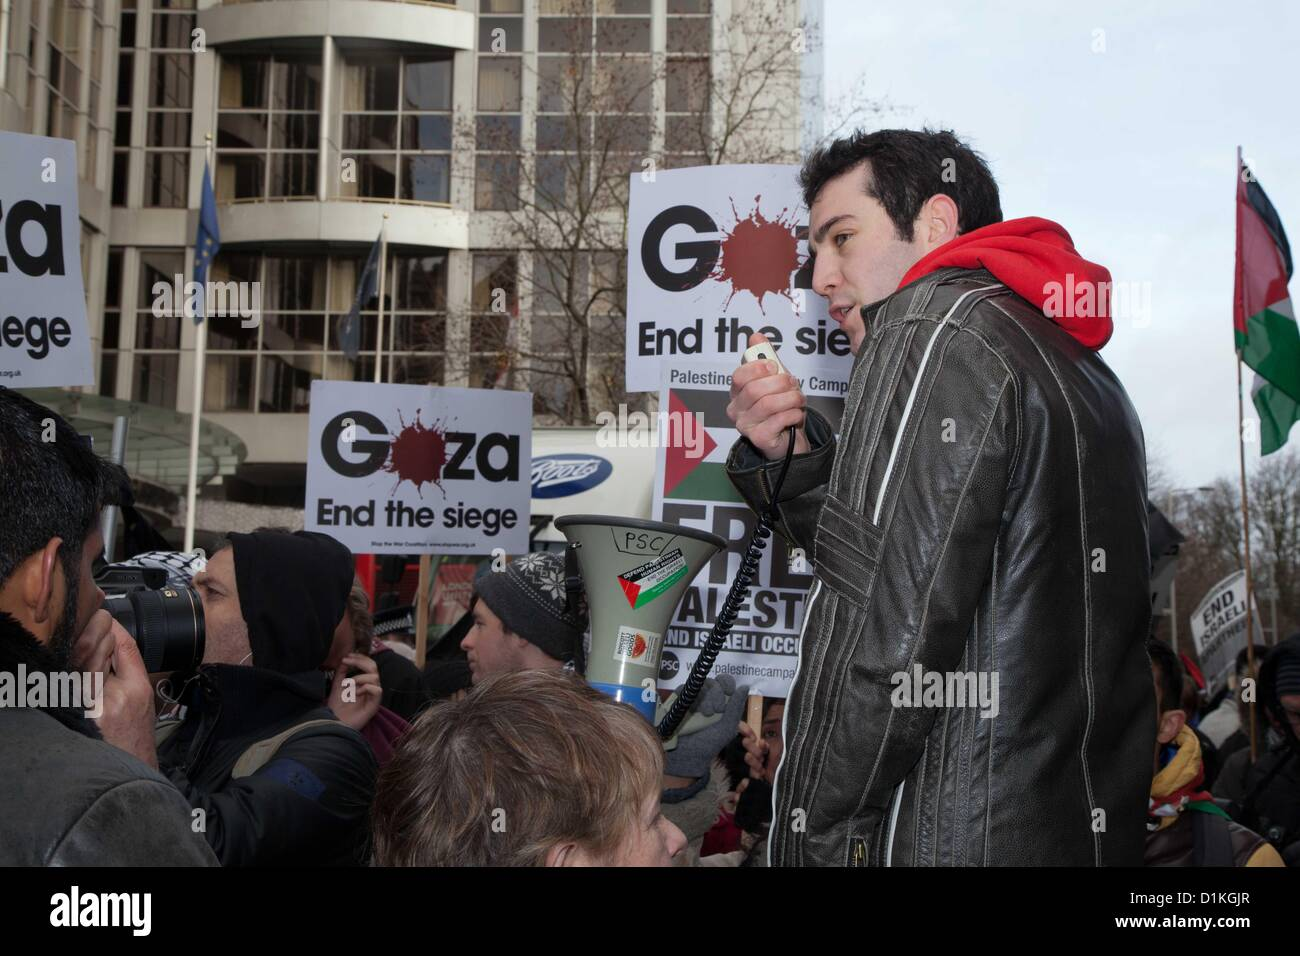 A student activists makes a speech. Palestinians and supporting activists gathered outside The Israeli Embassy to - Stock Image